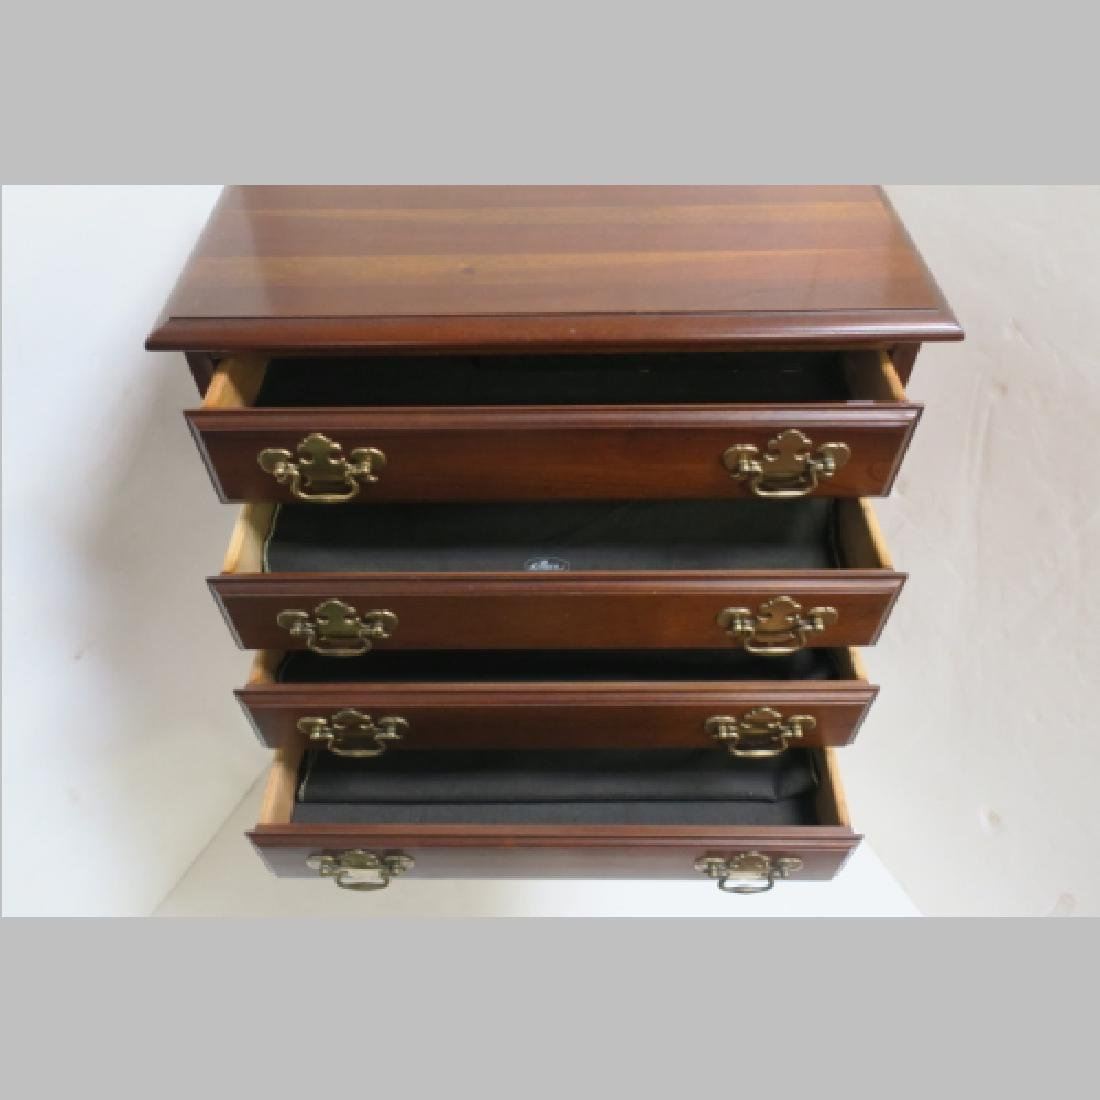 Queen Anne Style Four Drawer Silver Chest: - 4